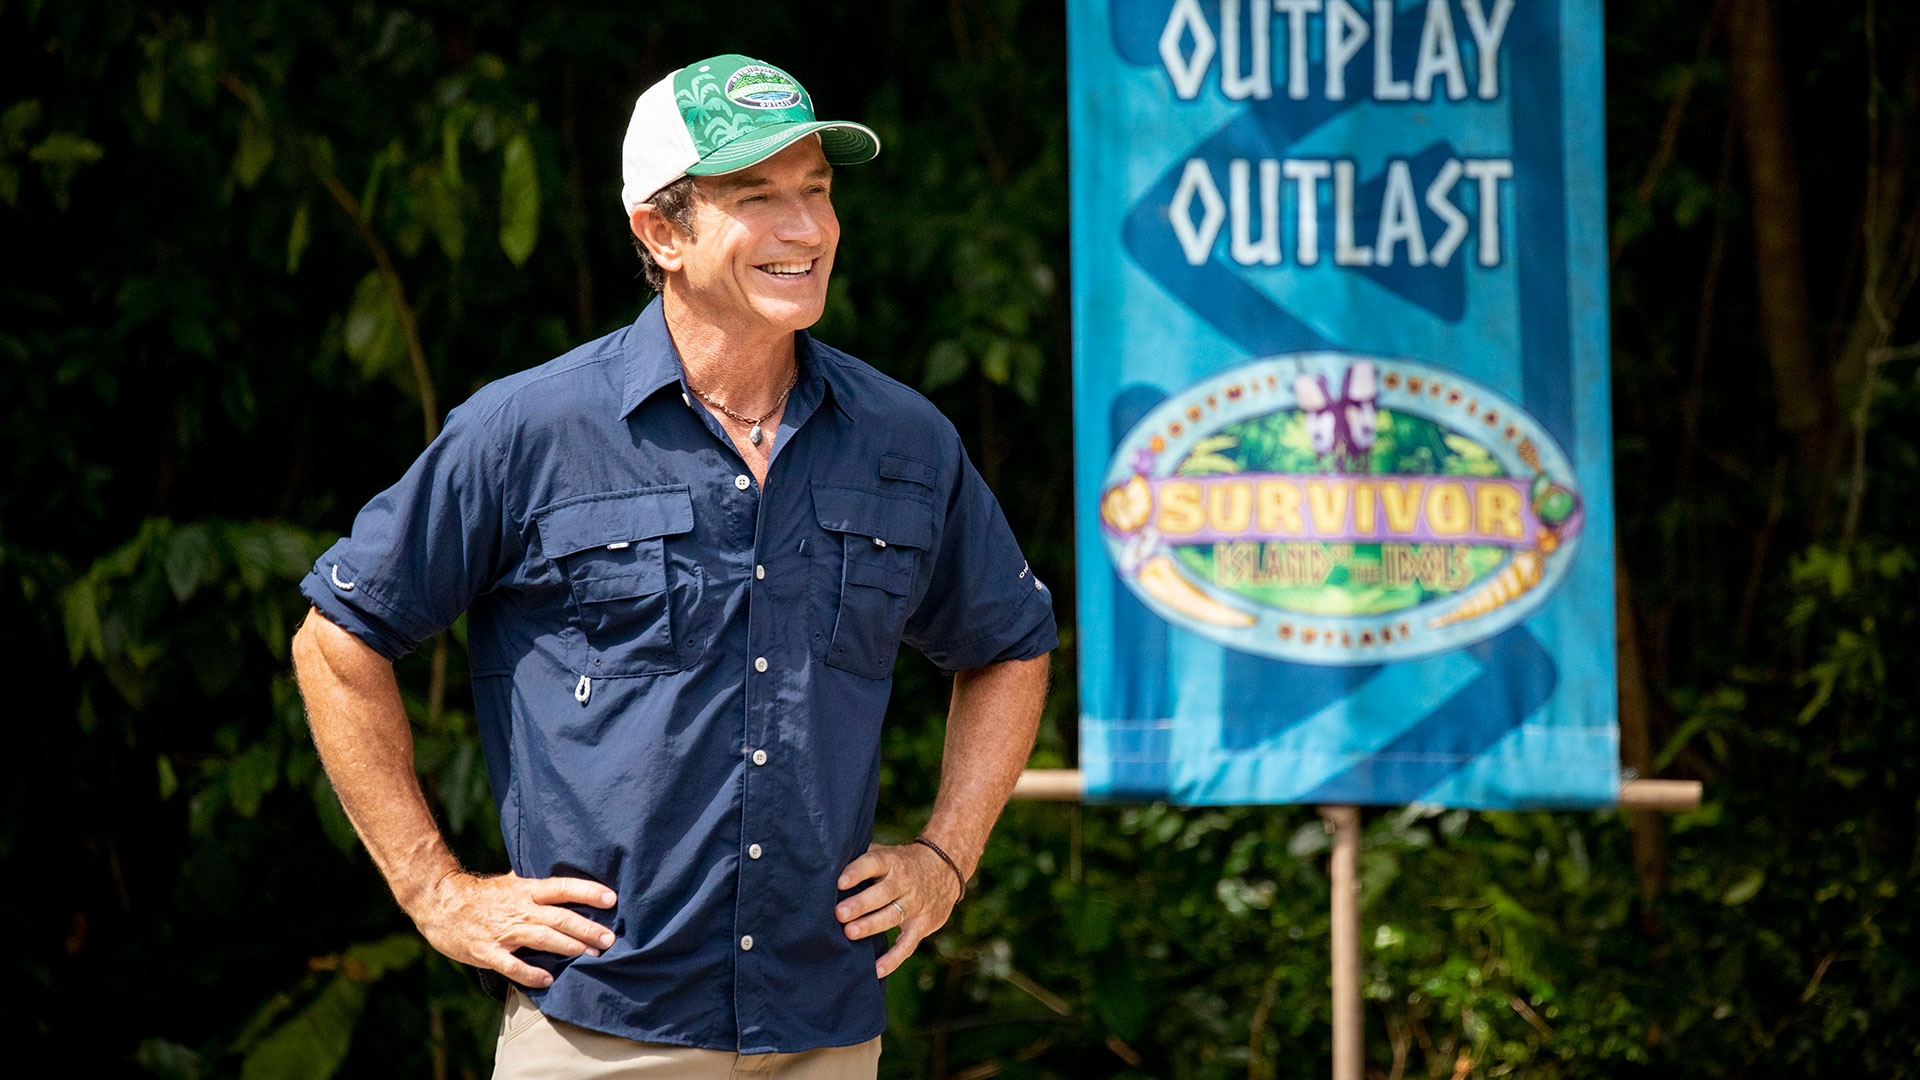 Meet the new castaways during the season premiere on Wednesday, Sept. 25 at 8/7c!